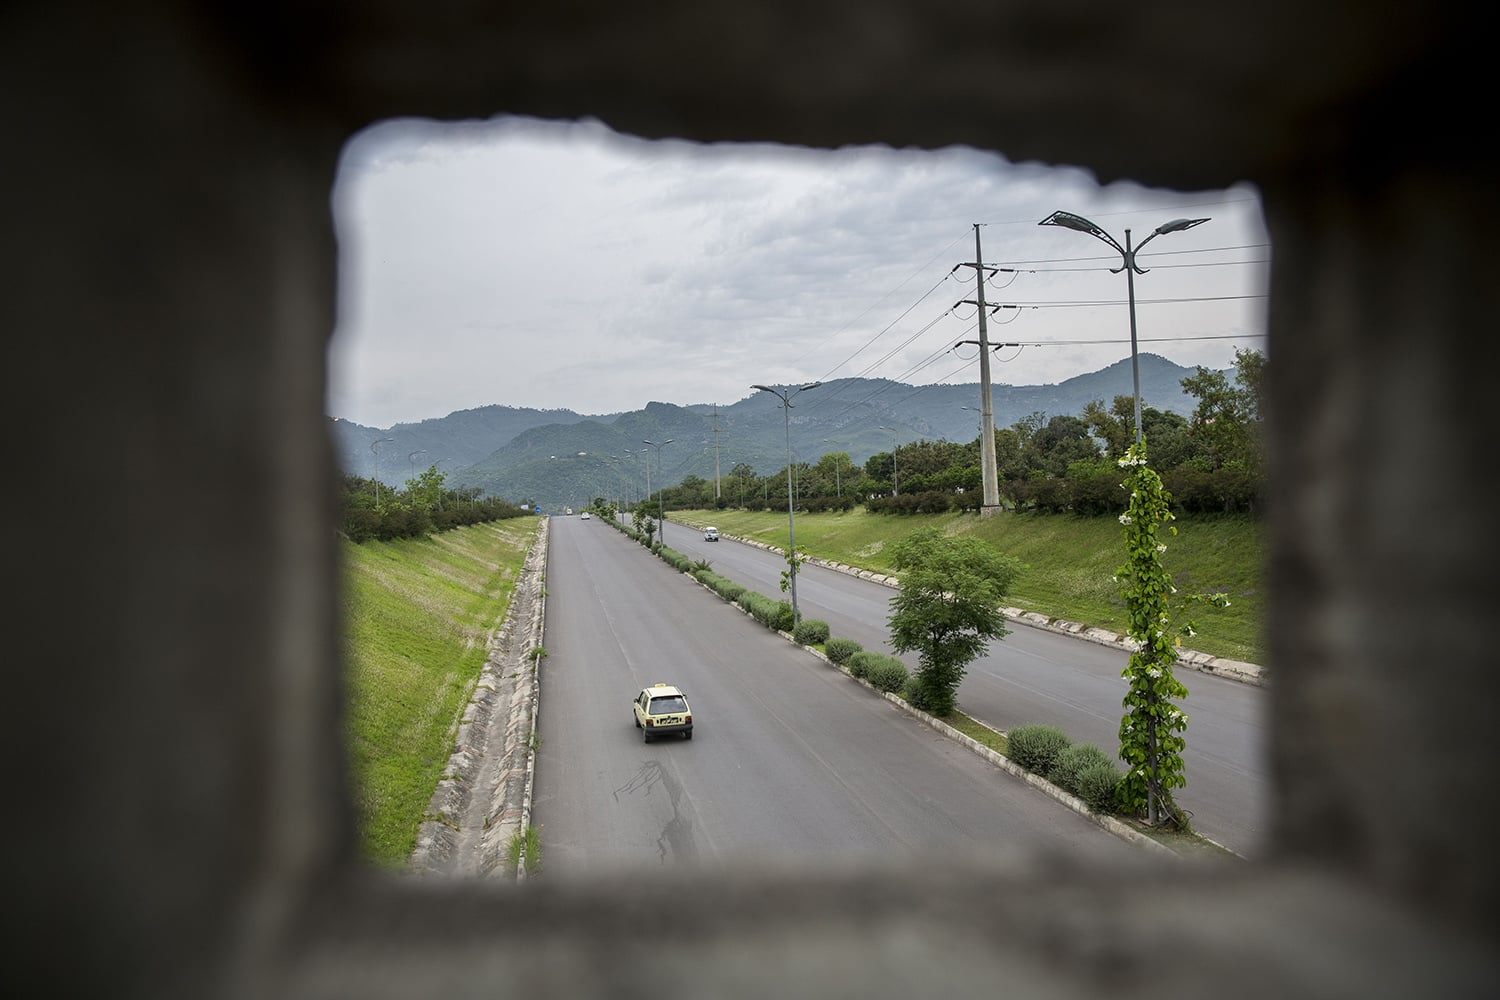 One of the busiest expressways in Islamabad after over 6-weeks of lockdown, May 3, 2020.